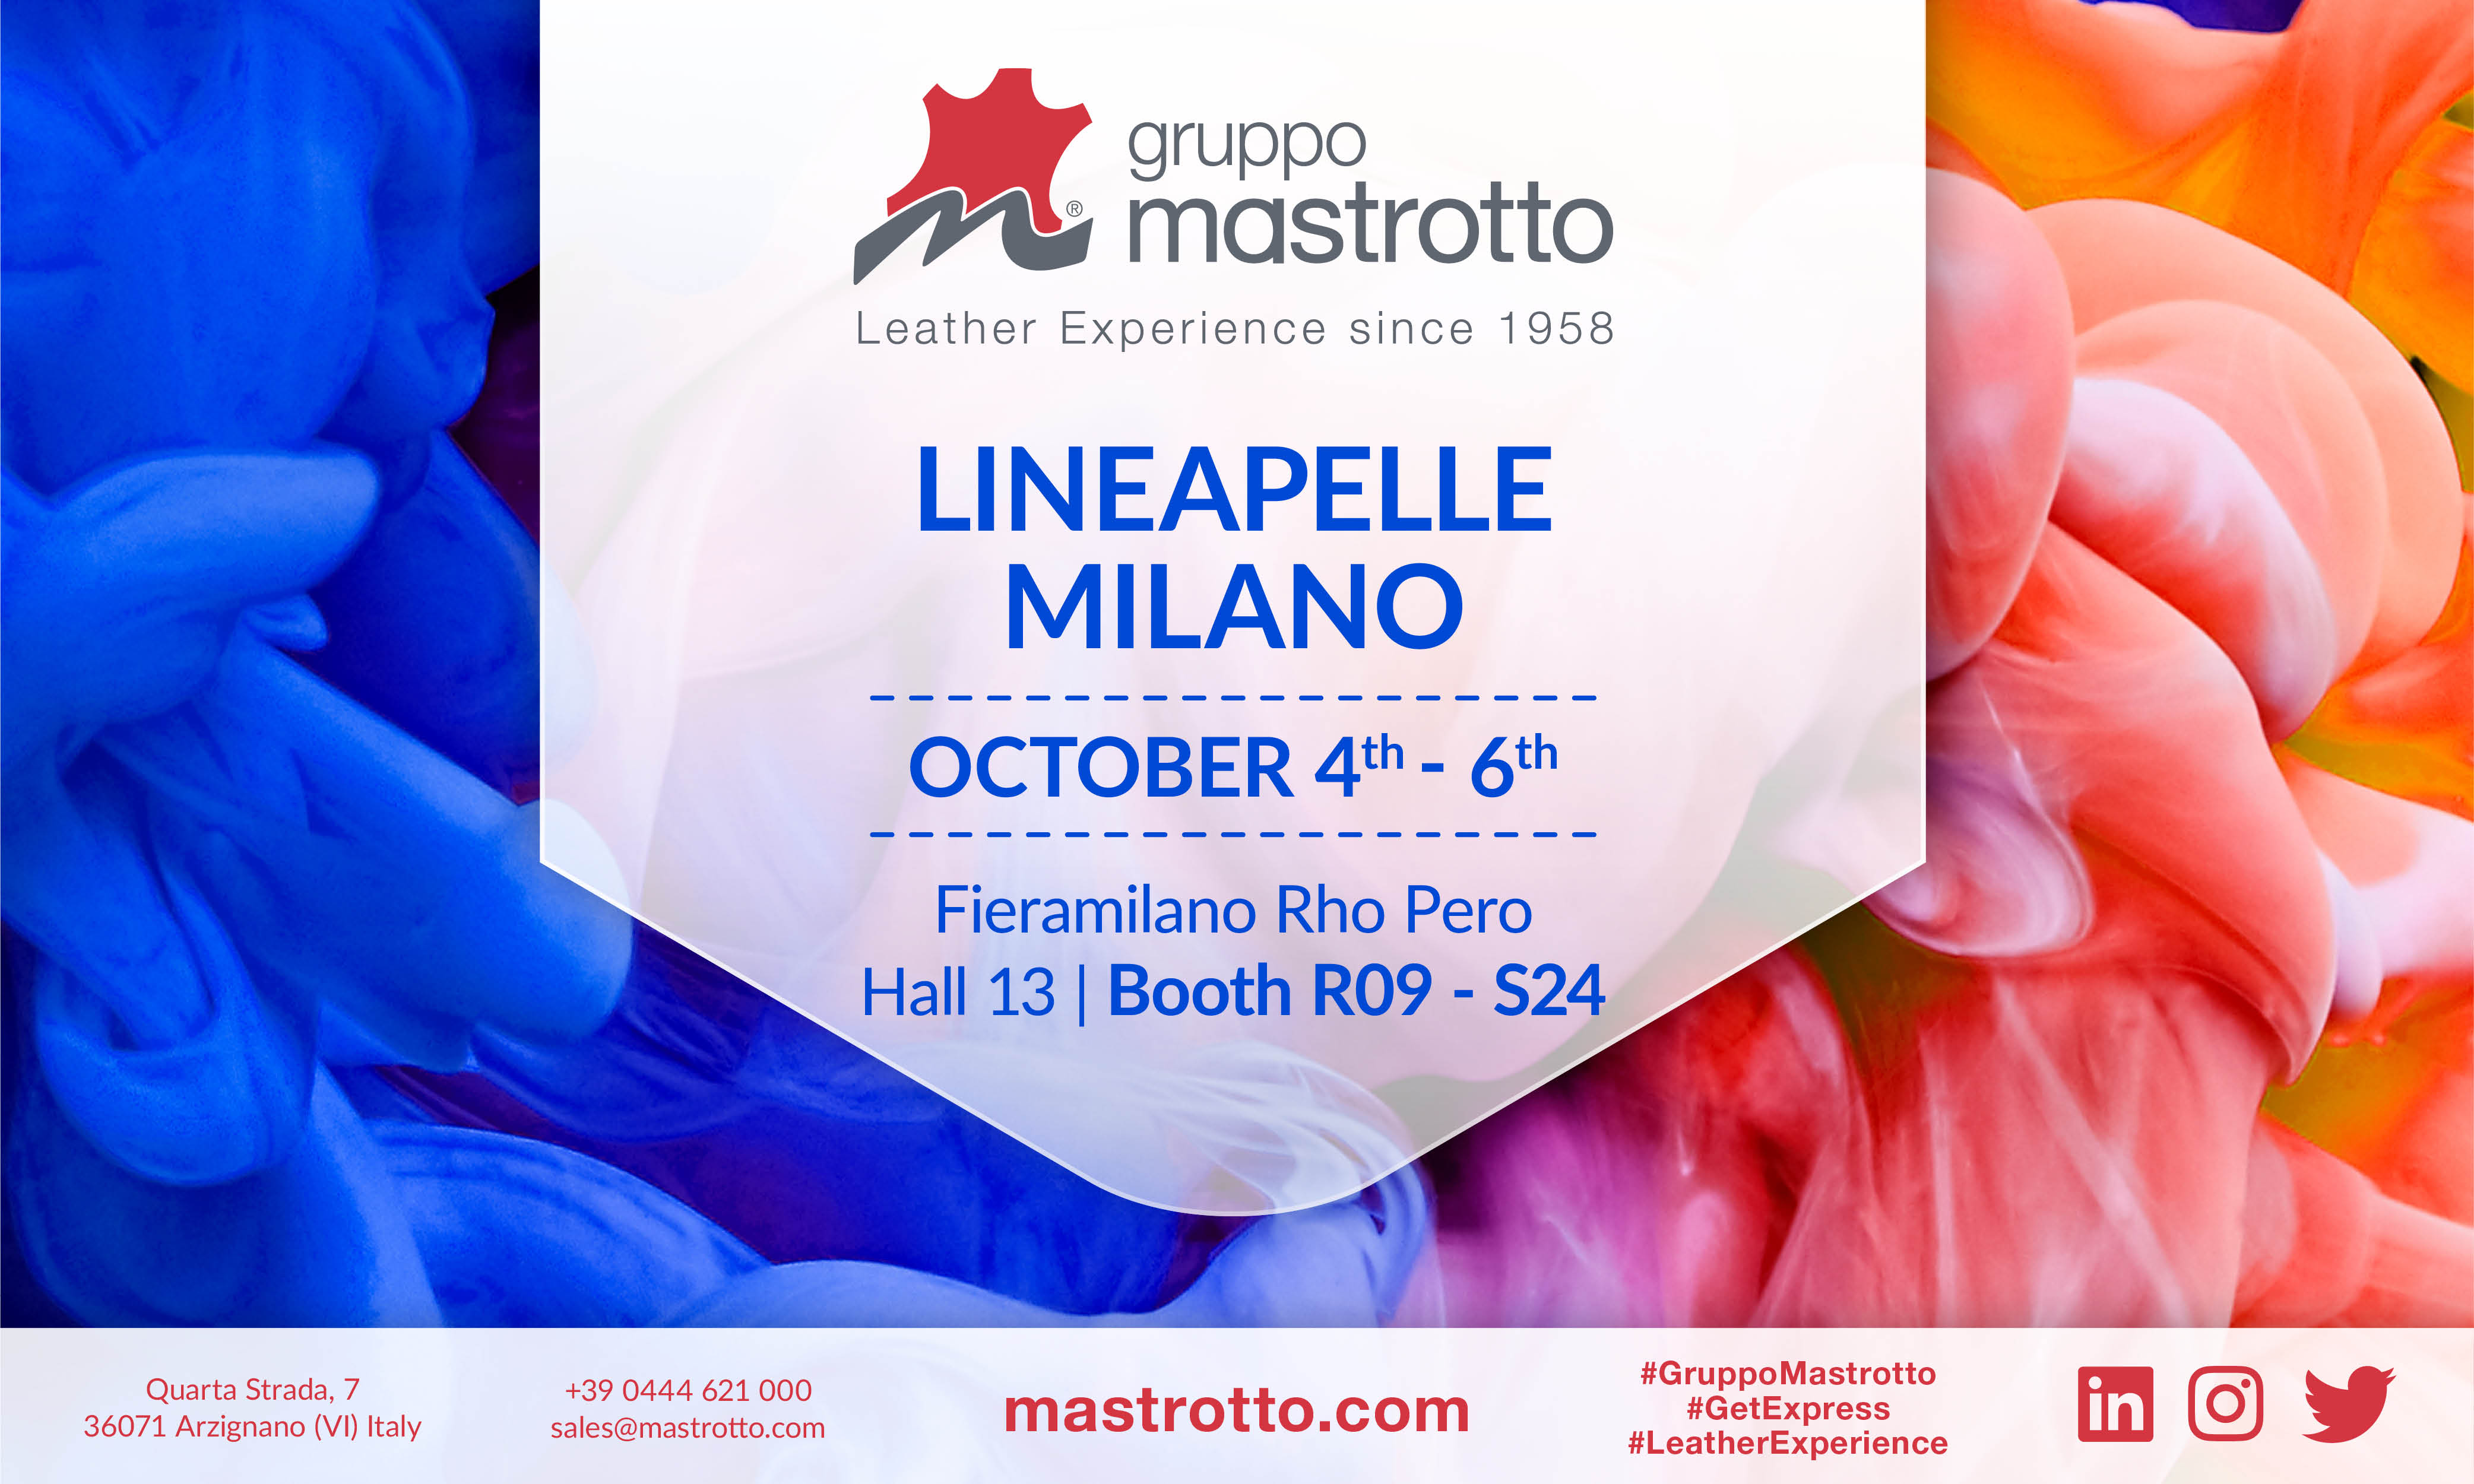 Lineapelle Milano 4-6 October 2017